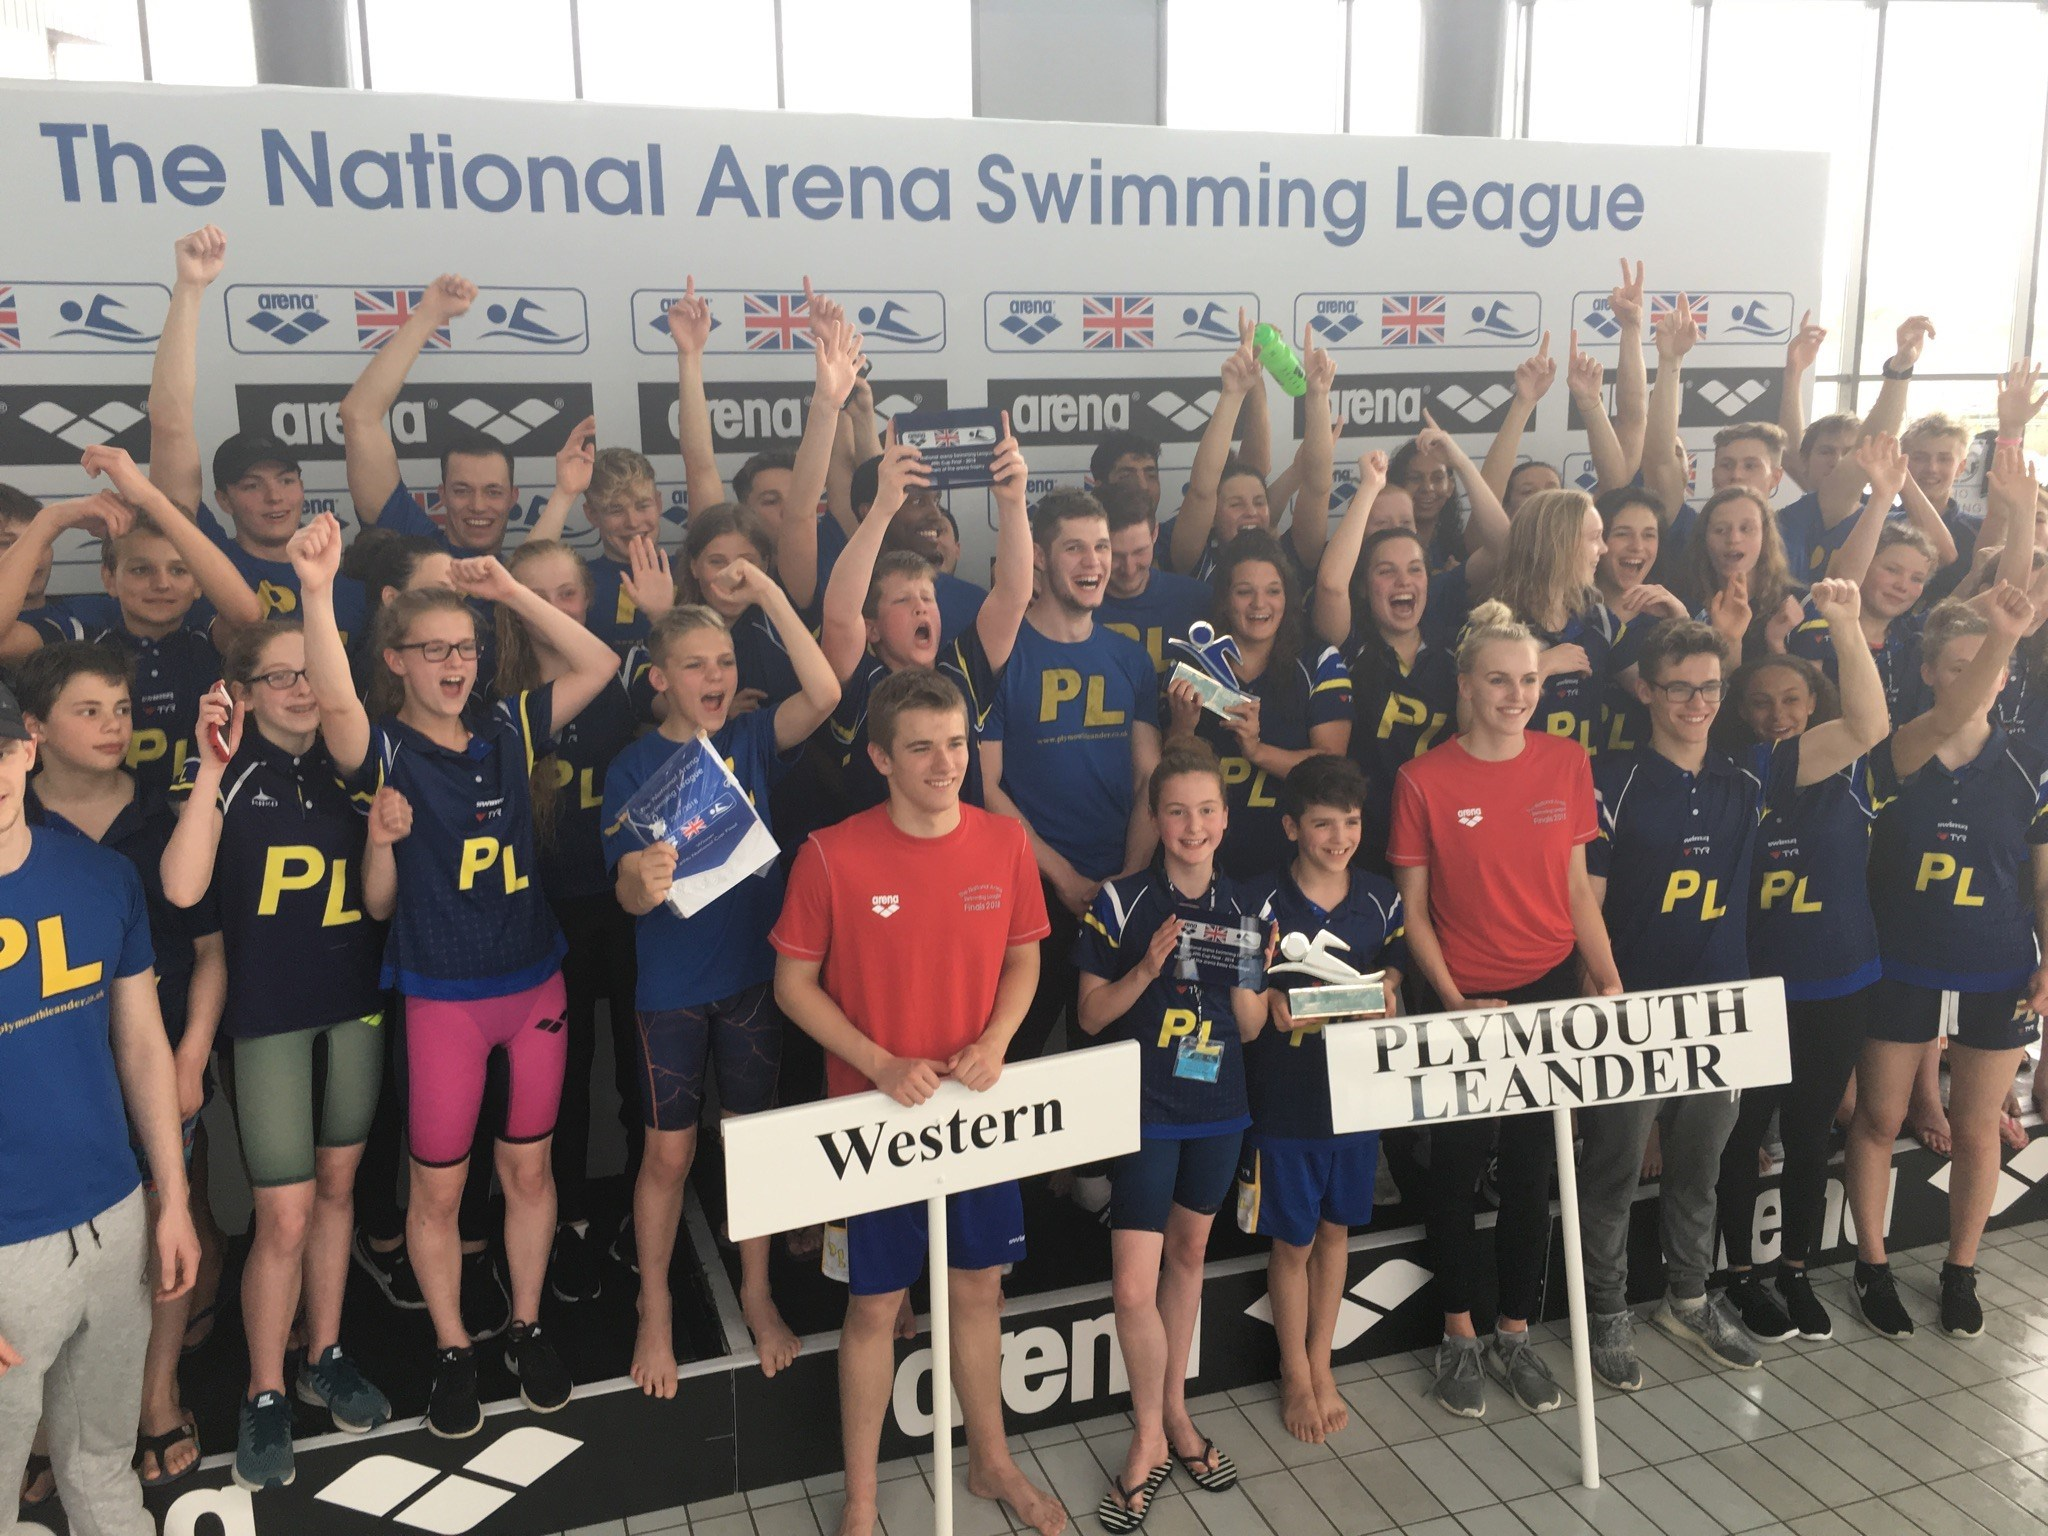 Plymouth Leander dominate final to become national club champions